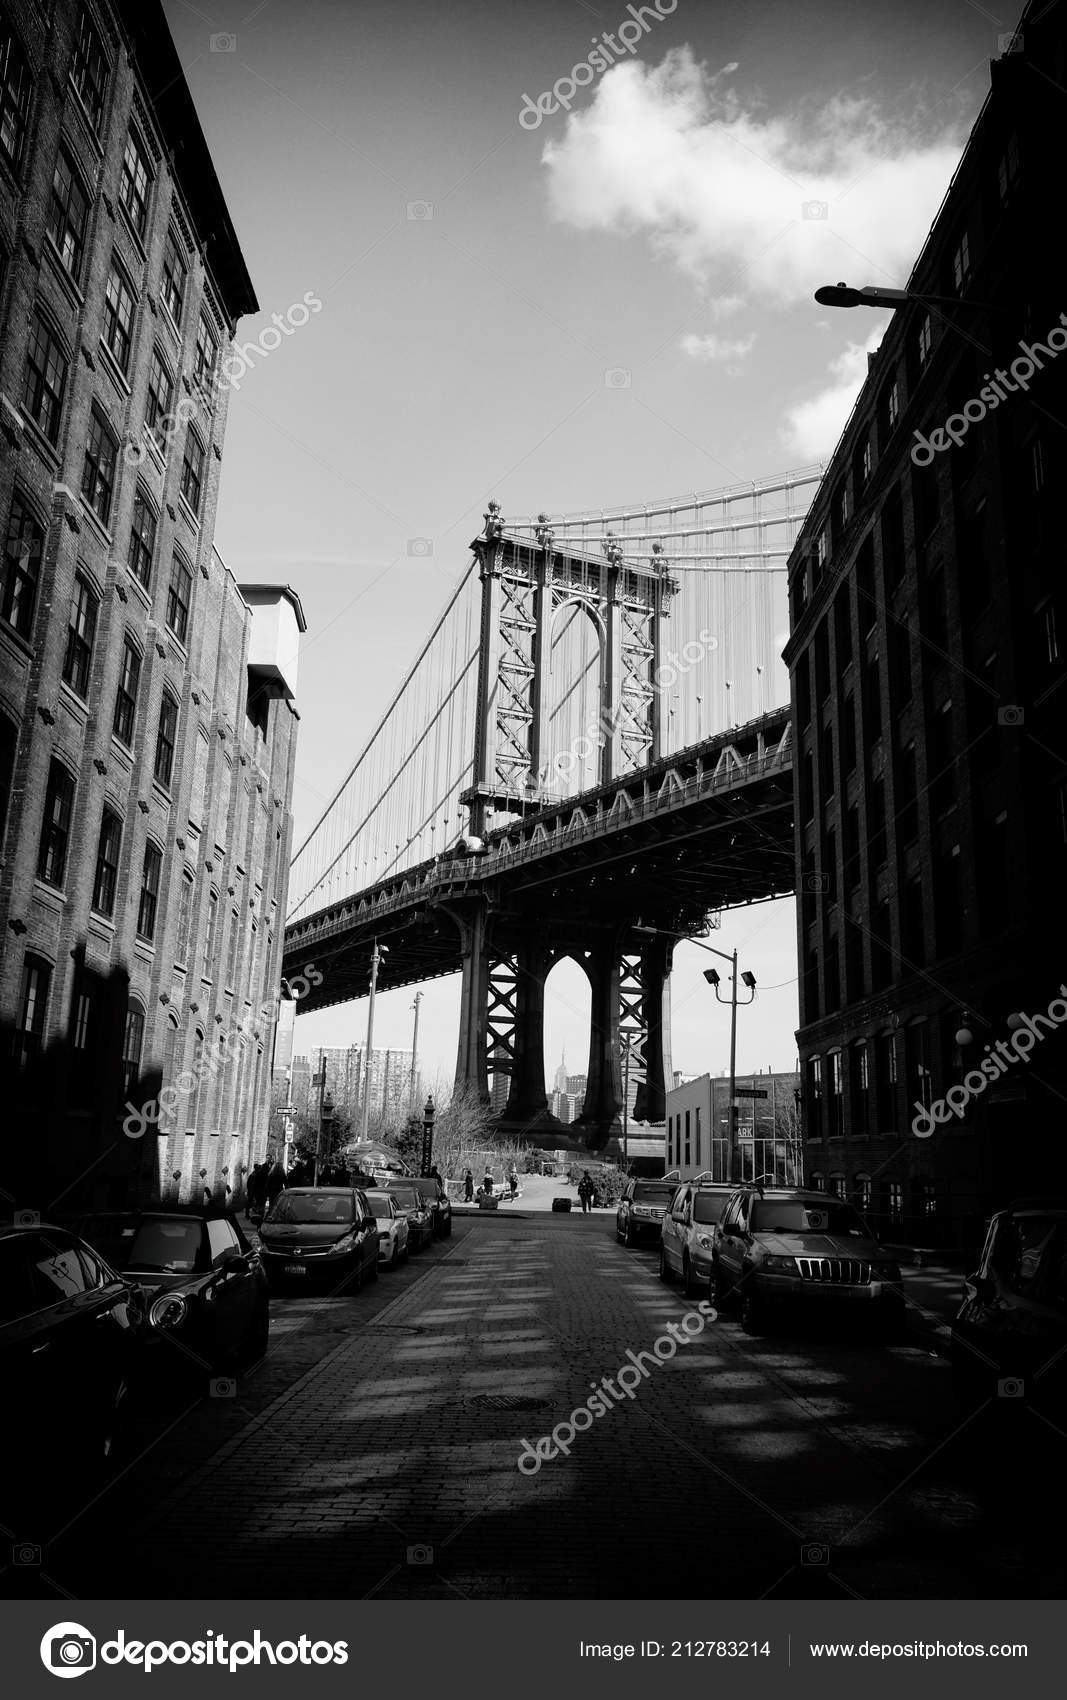 New york usa april 11 2018 manhattan bridge iconic view in black and white one of the most popular tourist attractions in new york city